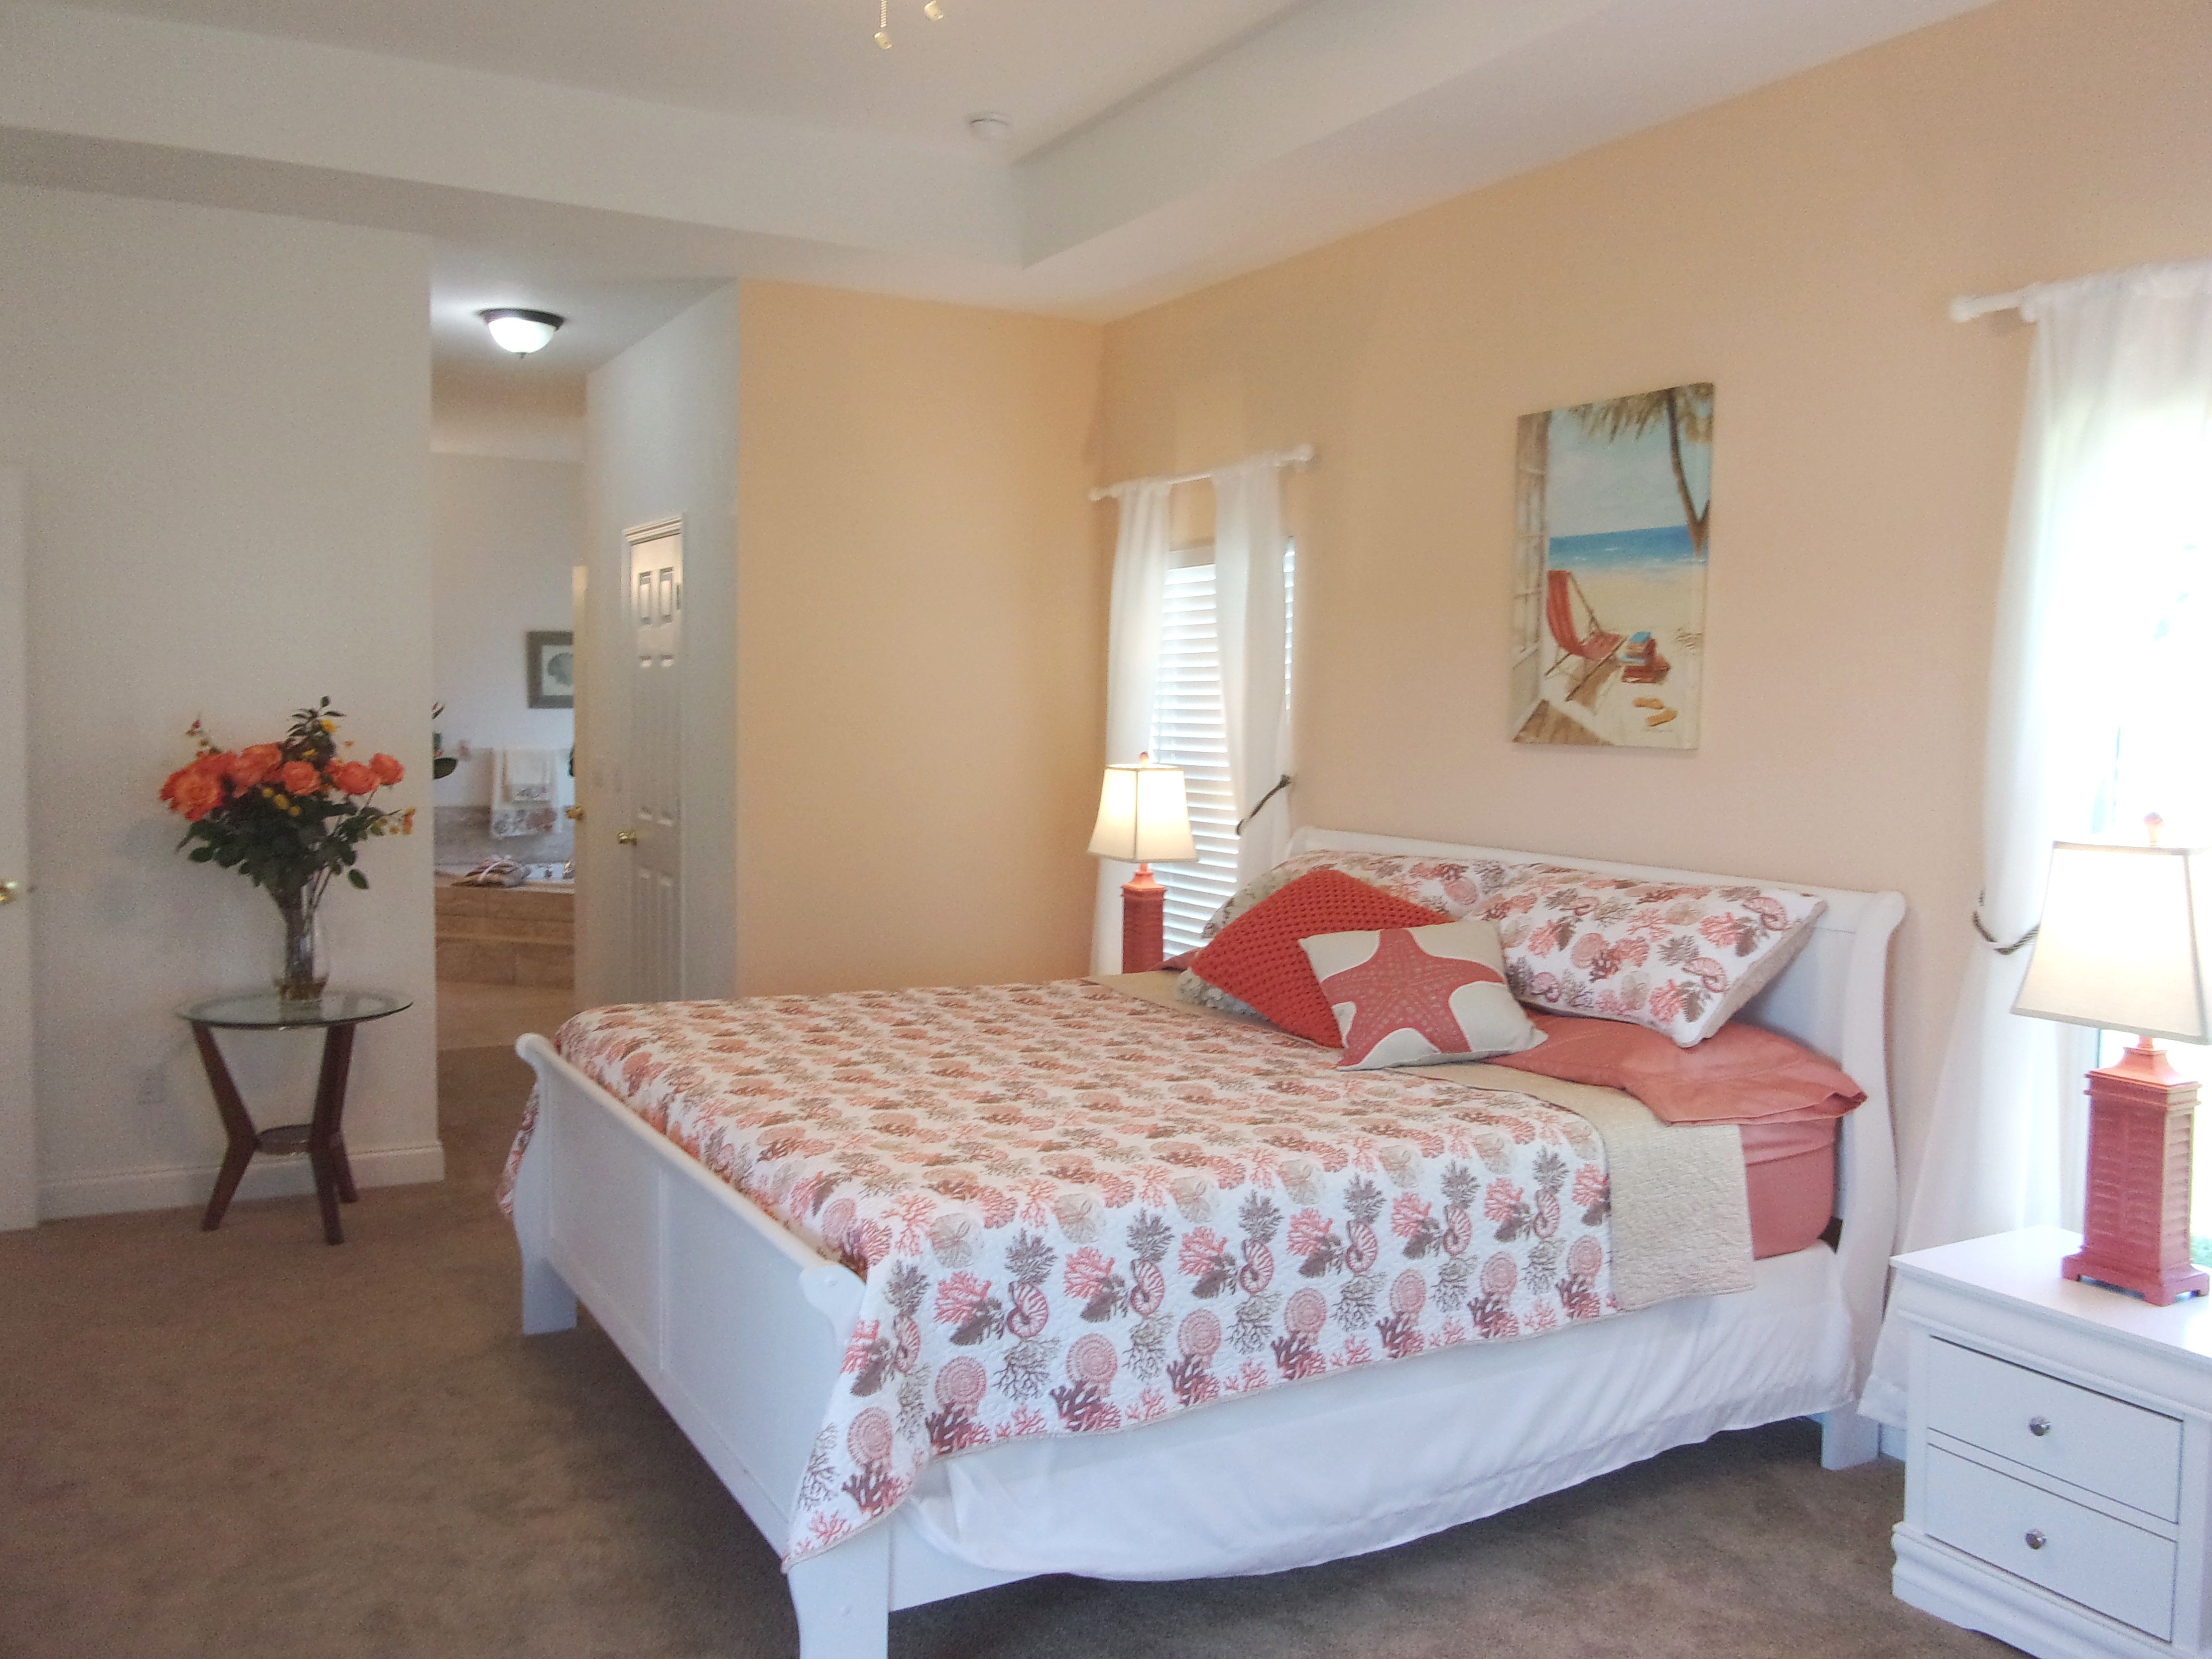 Bedroom featured in the Jayston By Port St Lucie Pool Homes